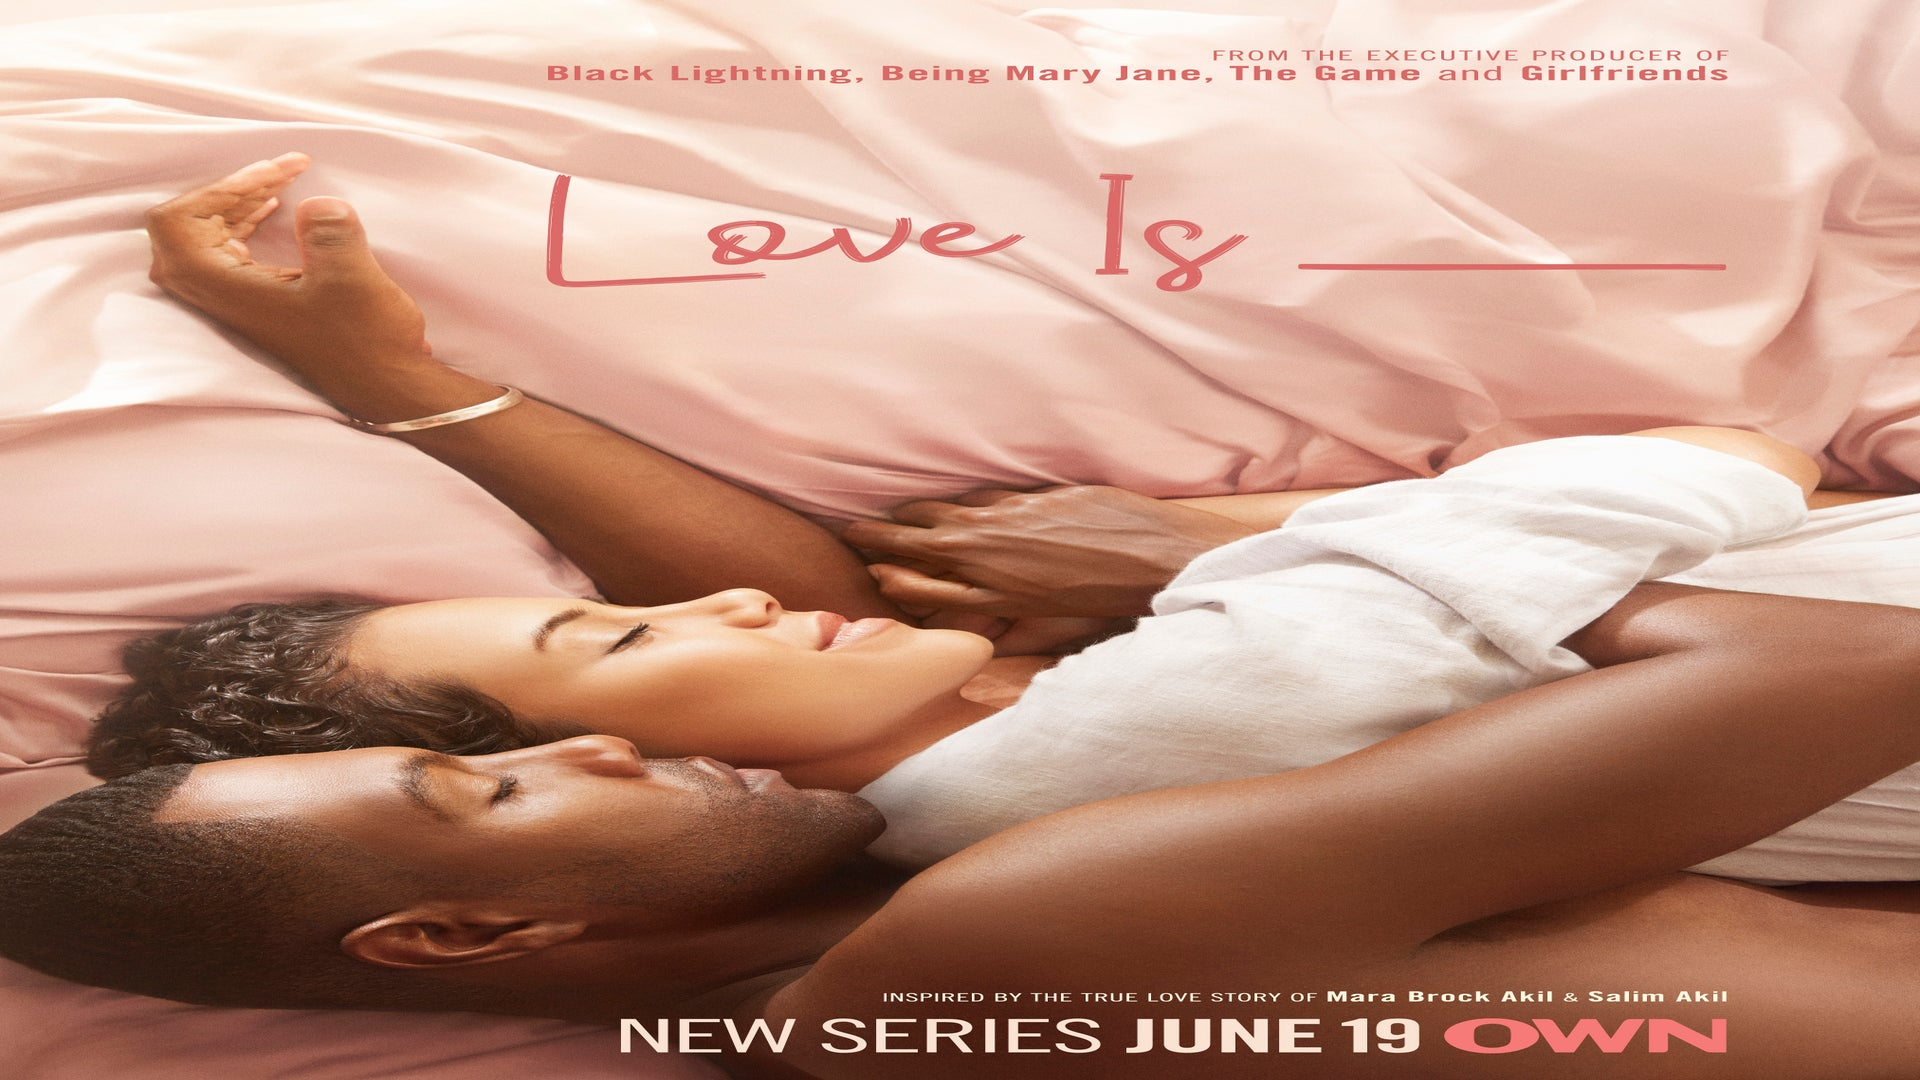 New OWN Drama 'Love Is_' Goes Deep On Relationships This Summer